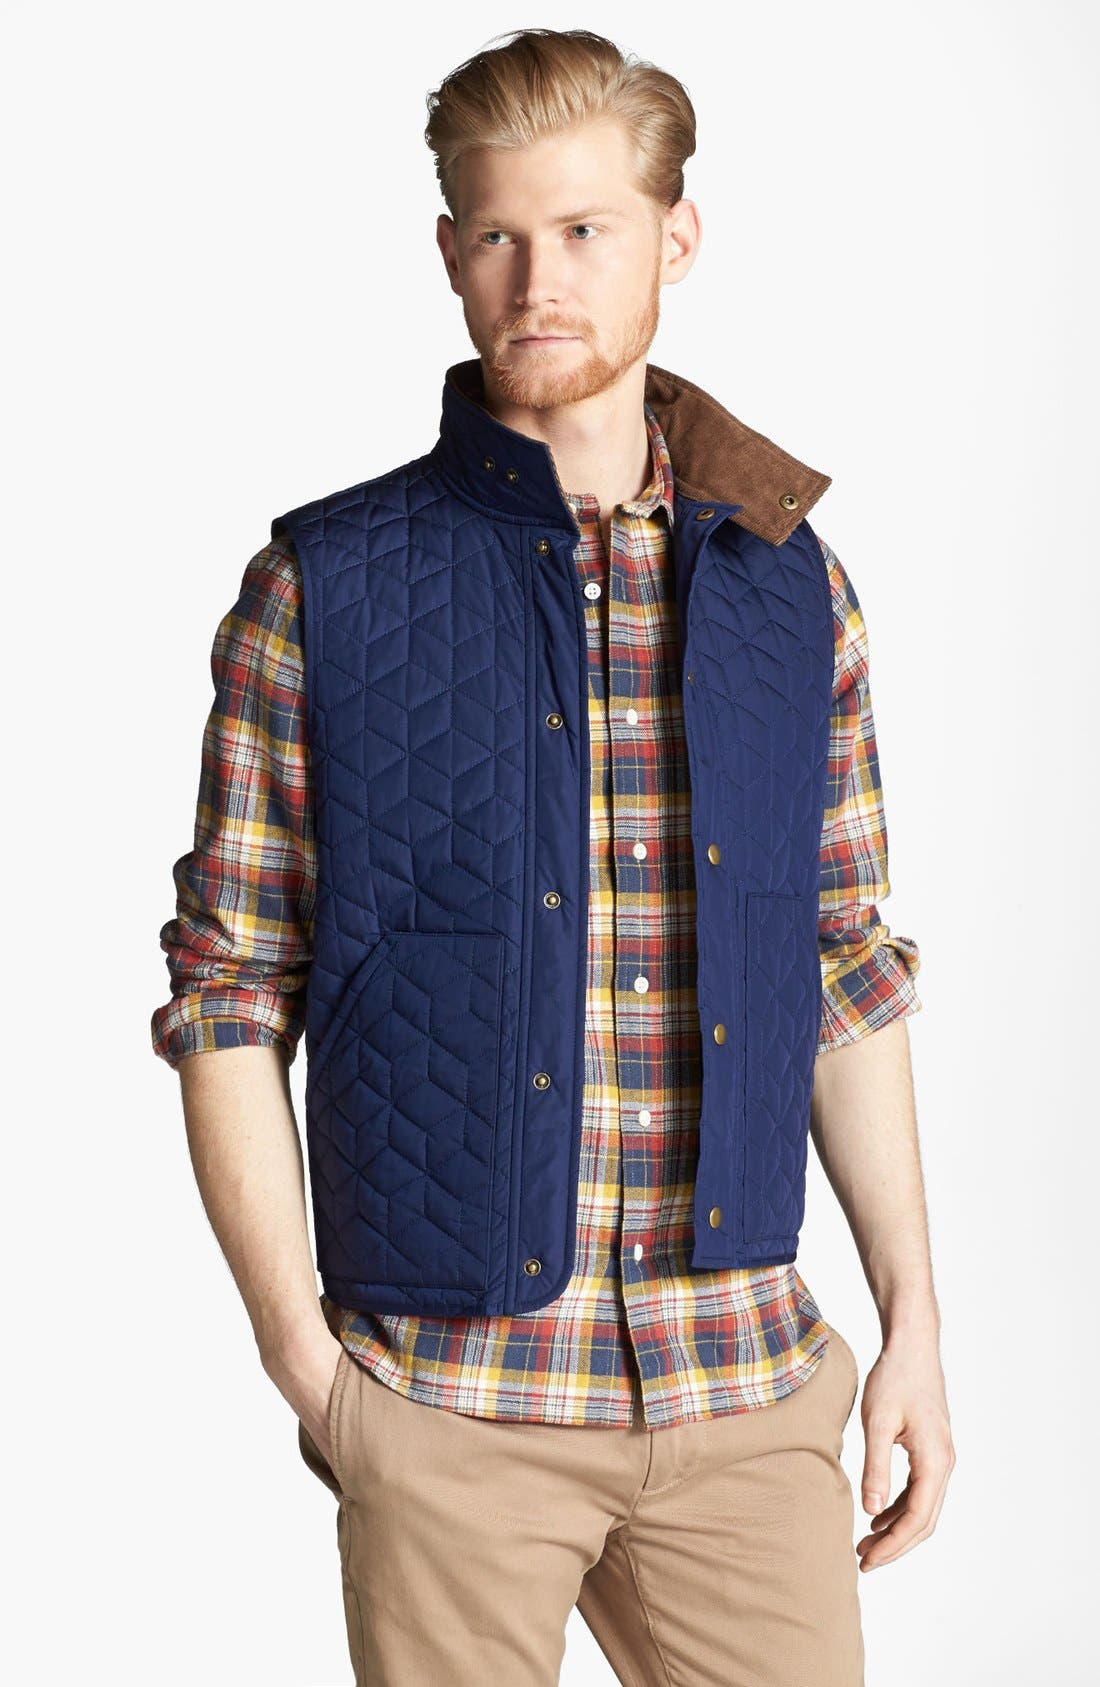 JACK SPADE 'Herington' Quilted Vest, Main, color, 400